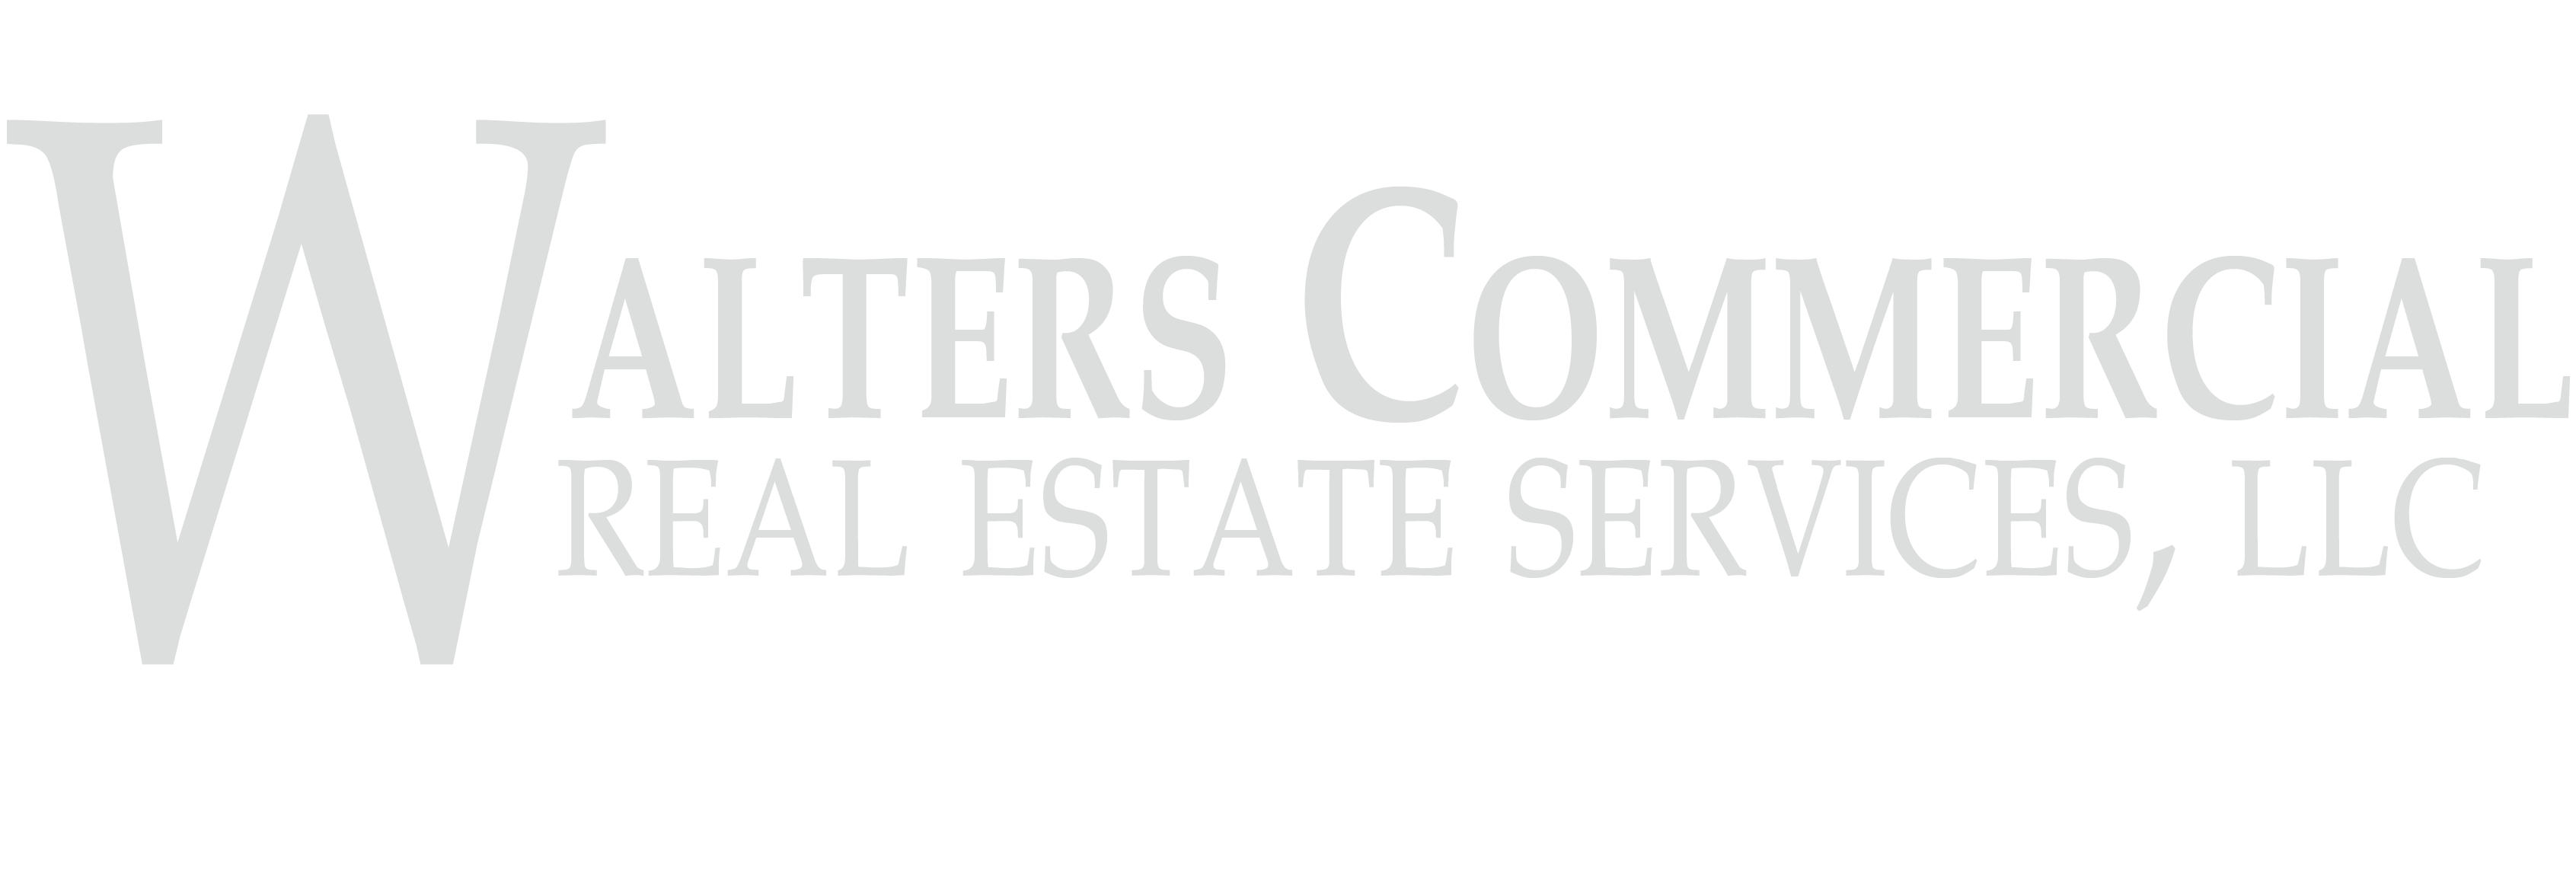 Walters Commercial Real Estate Services, LLC